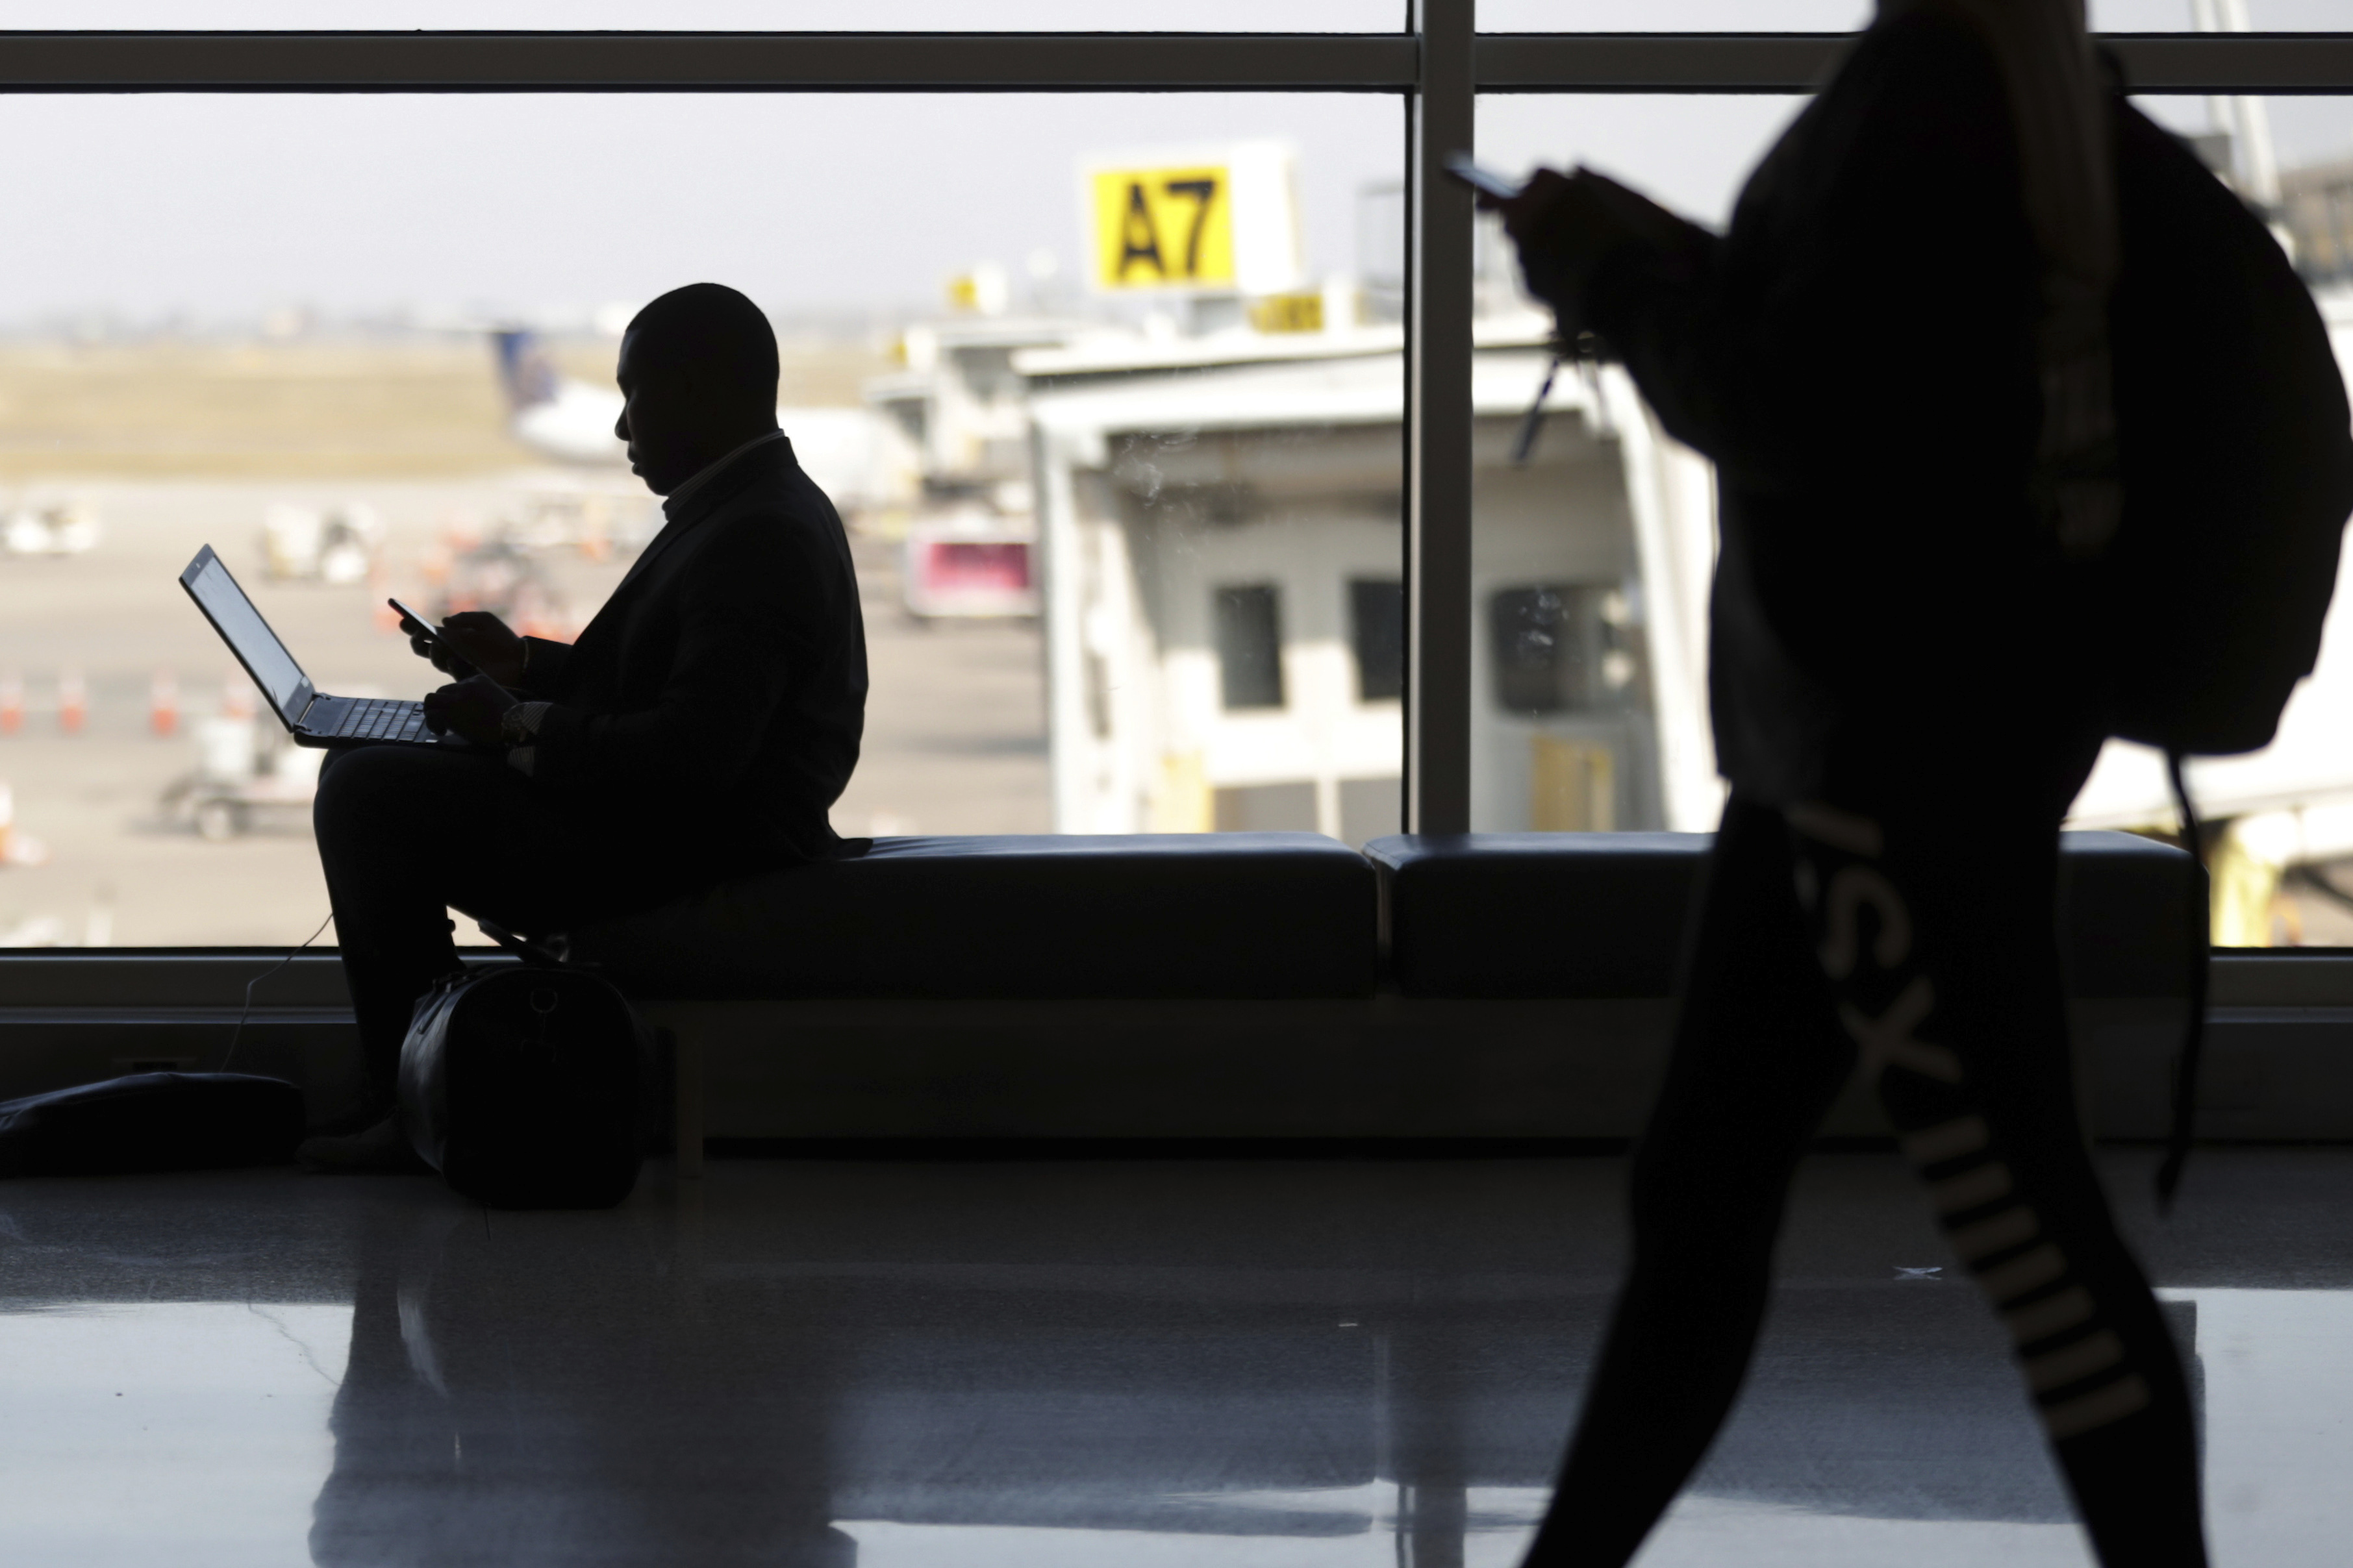 Travelers check their phones at Indianapolis International Airport in Indianapolis on Nov. 21, 2018.